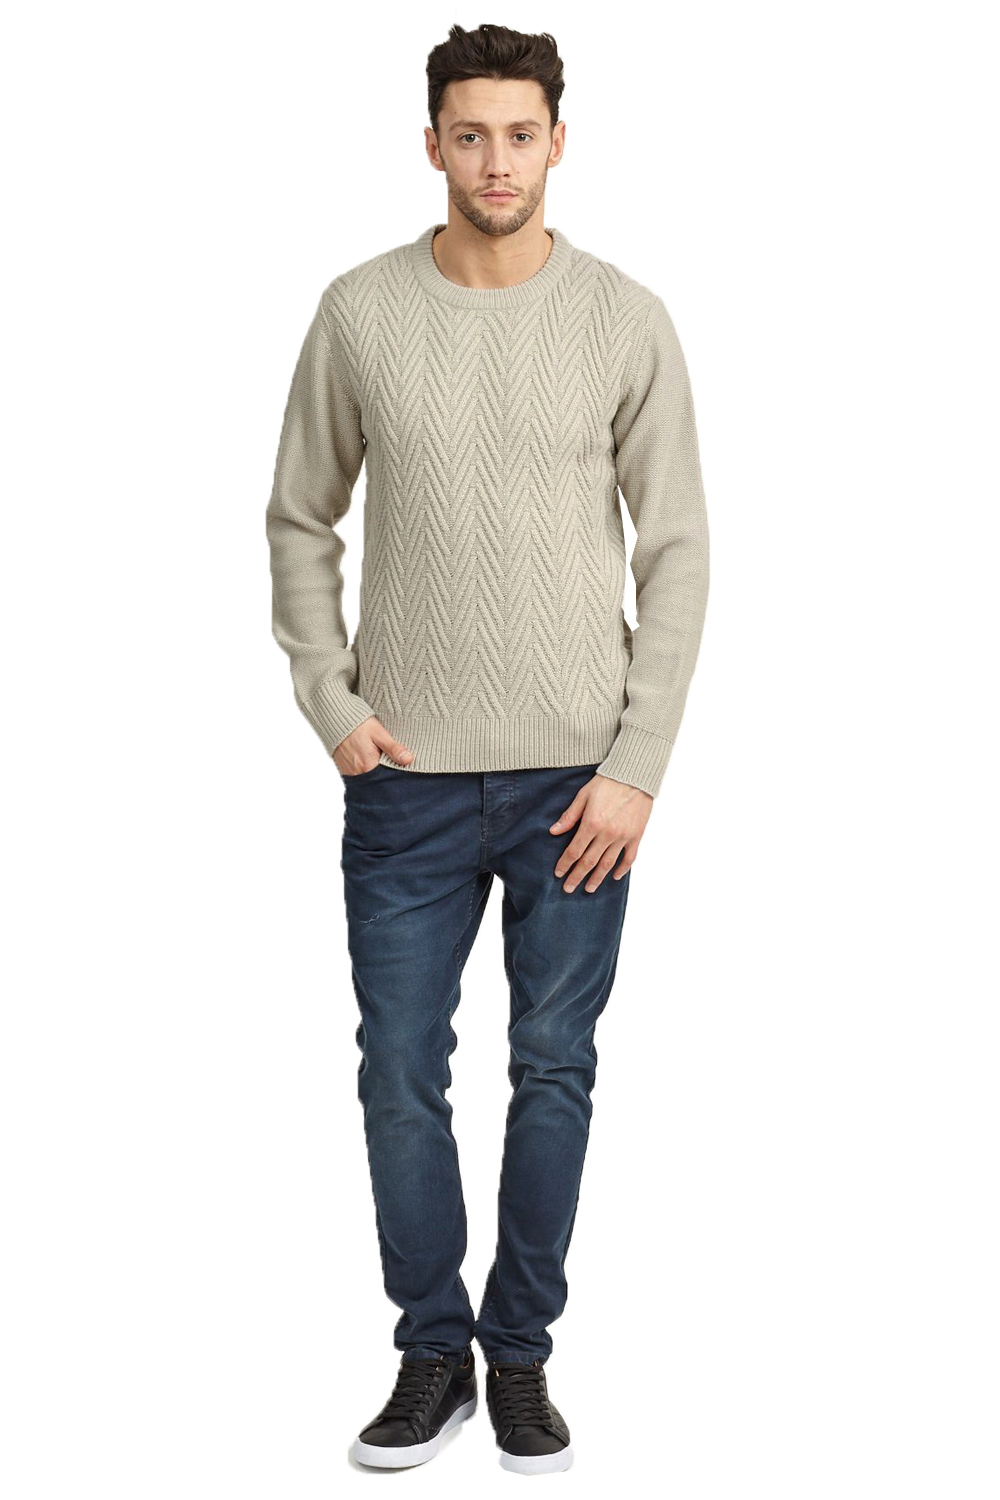 Brave Soul Mens Origins Designer Chevron Knit Sweater Crew ...